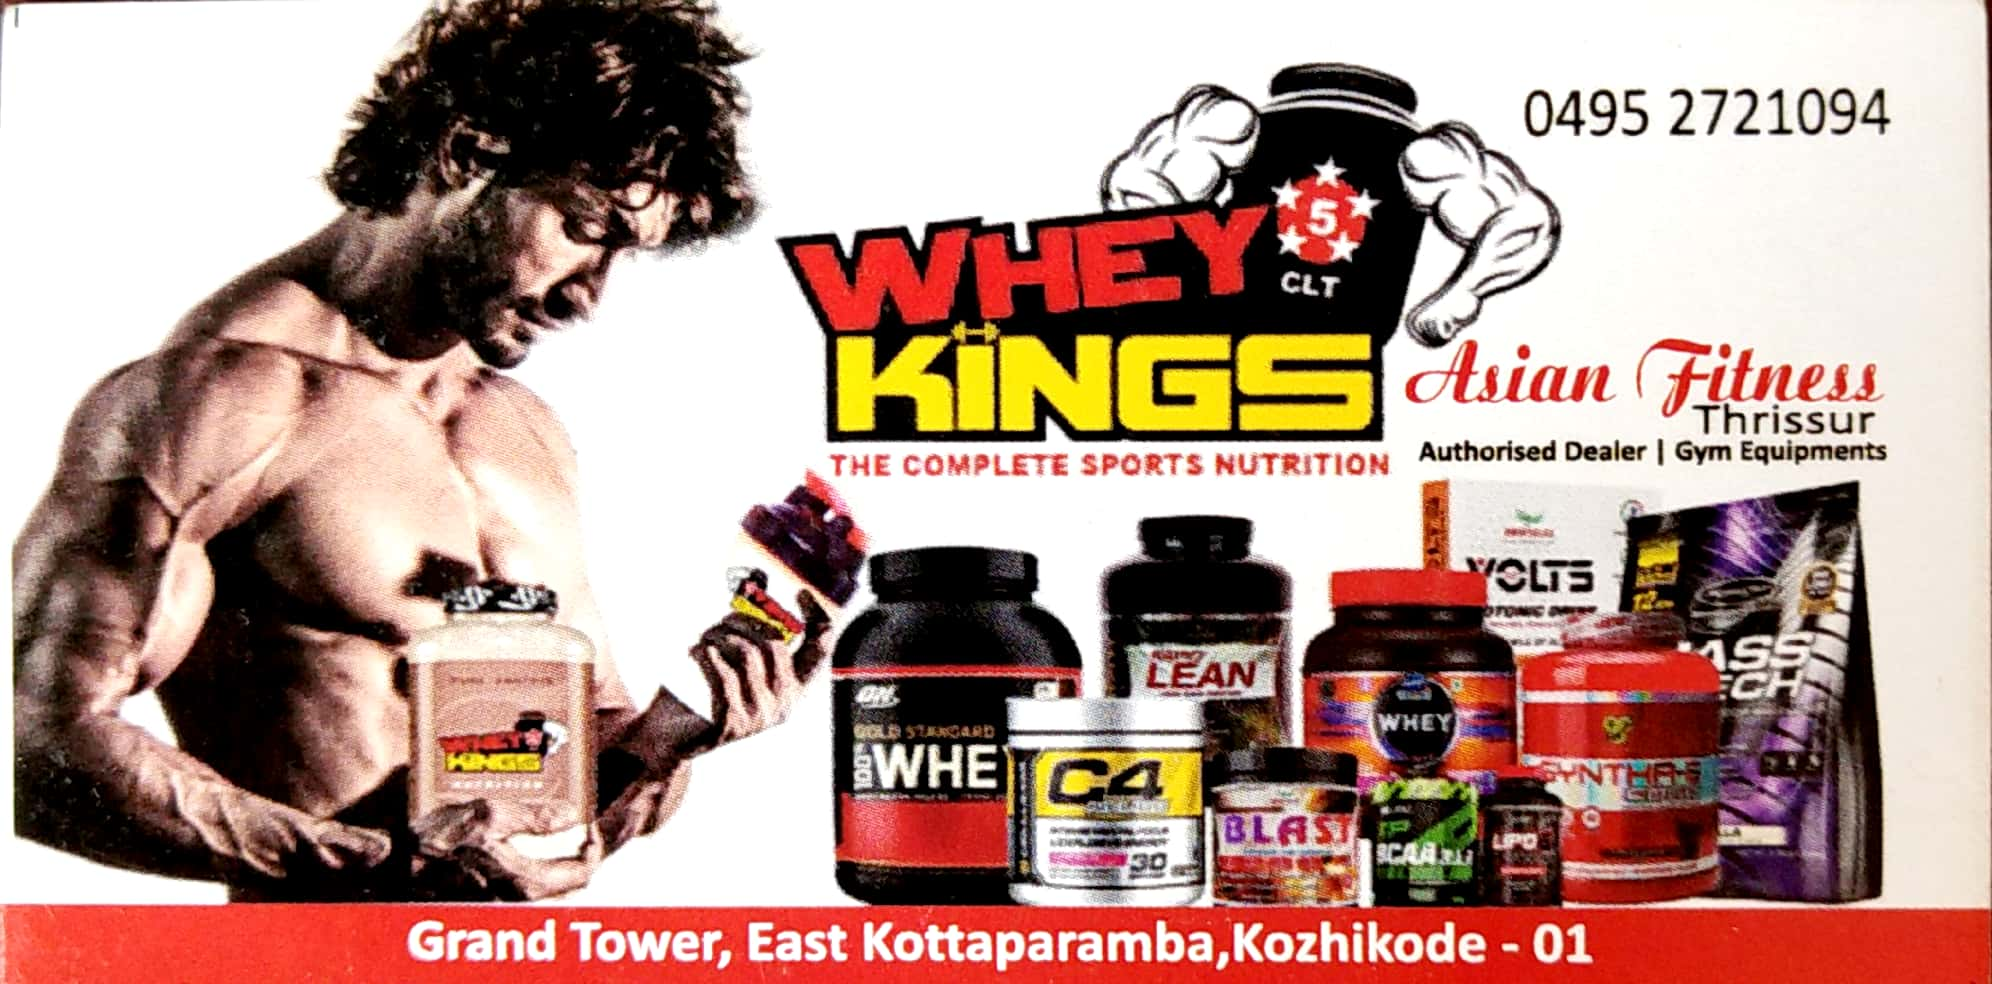 WHEY KINGS, FITNESS EQUIPMENT SHOP,  service in Arayidathupalam, Kozhikode